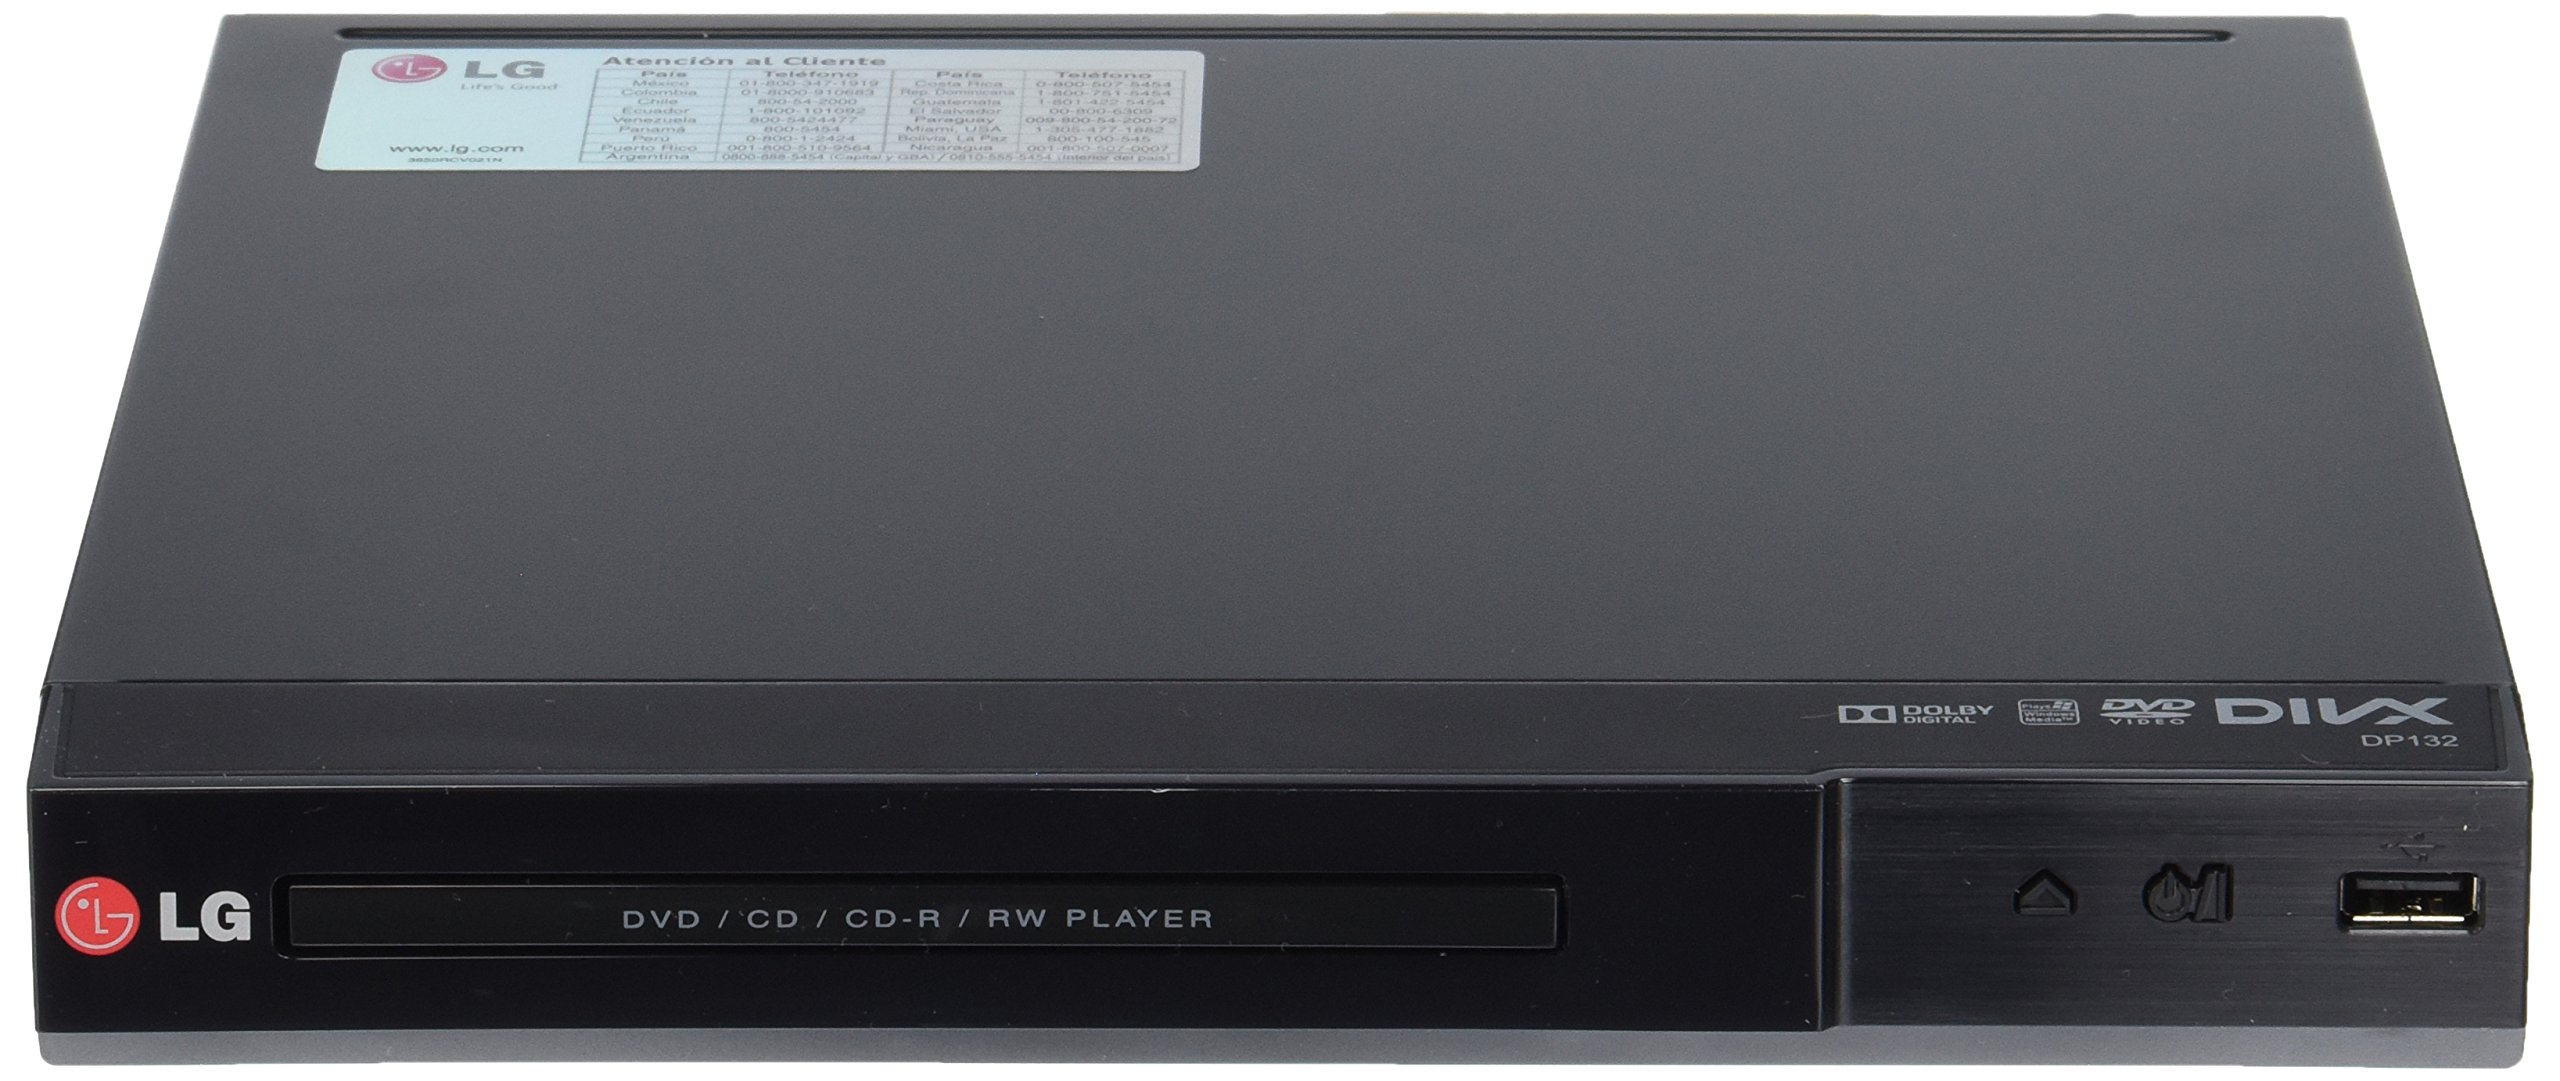 LG DP132 DVD Player With Flexible USB & DivX Playback by LG